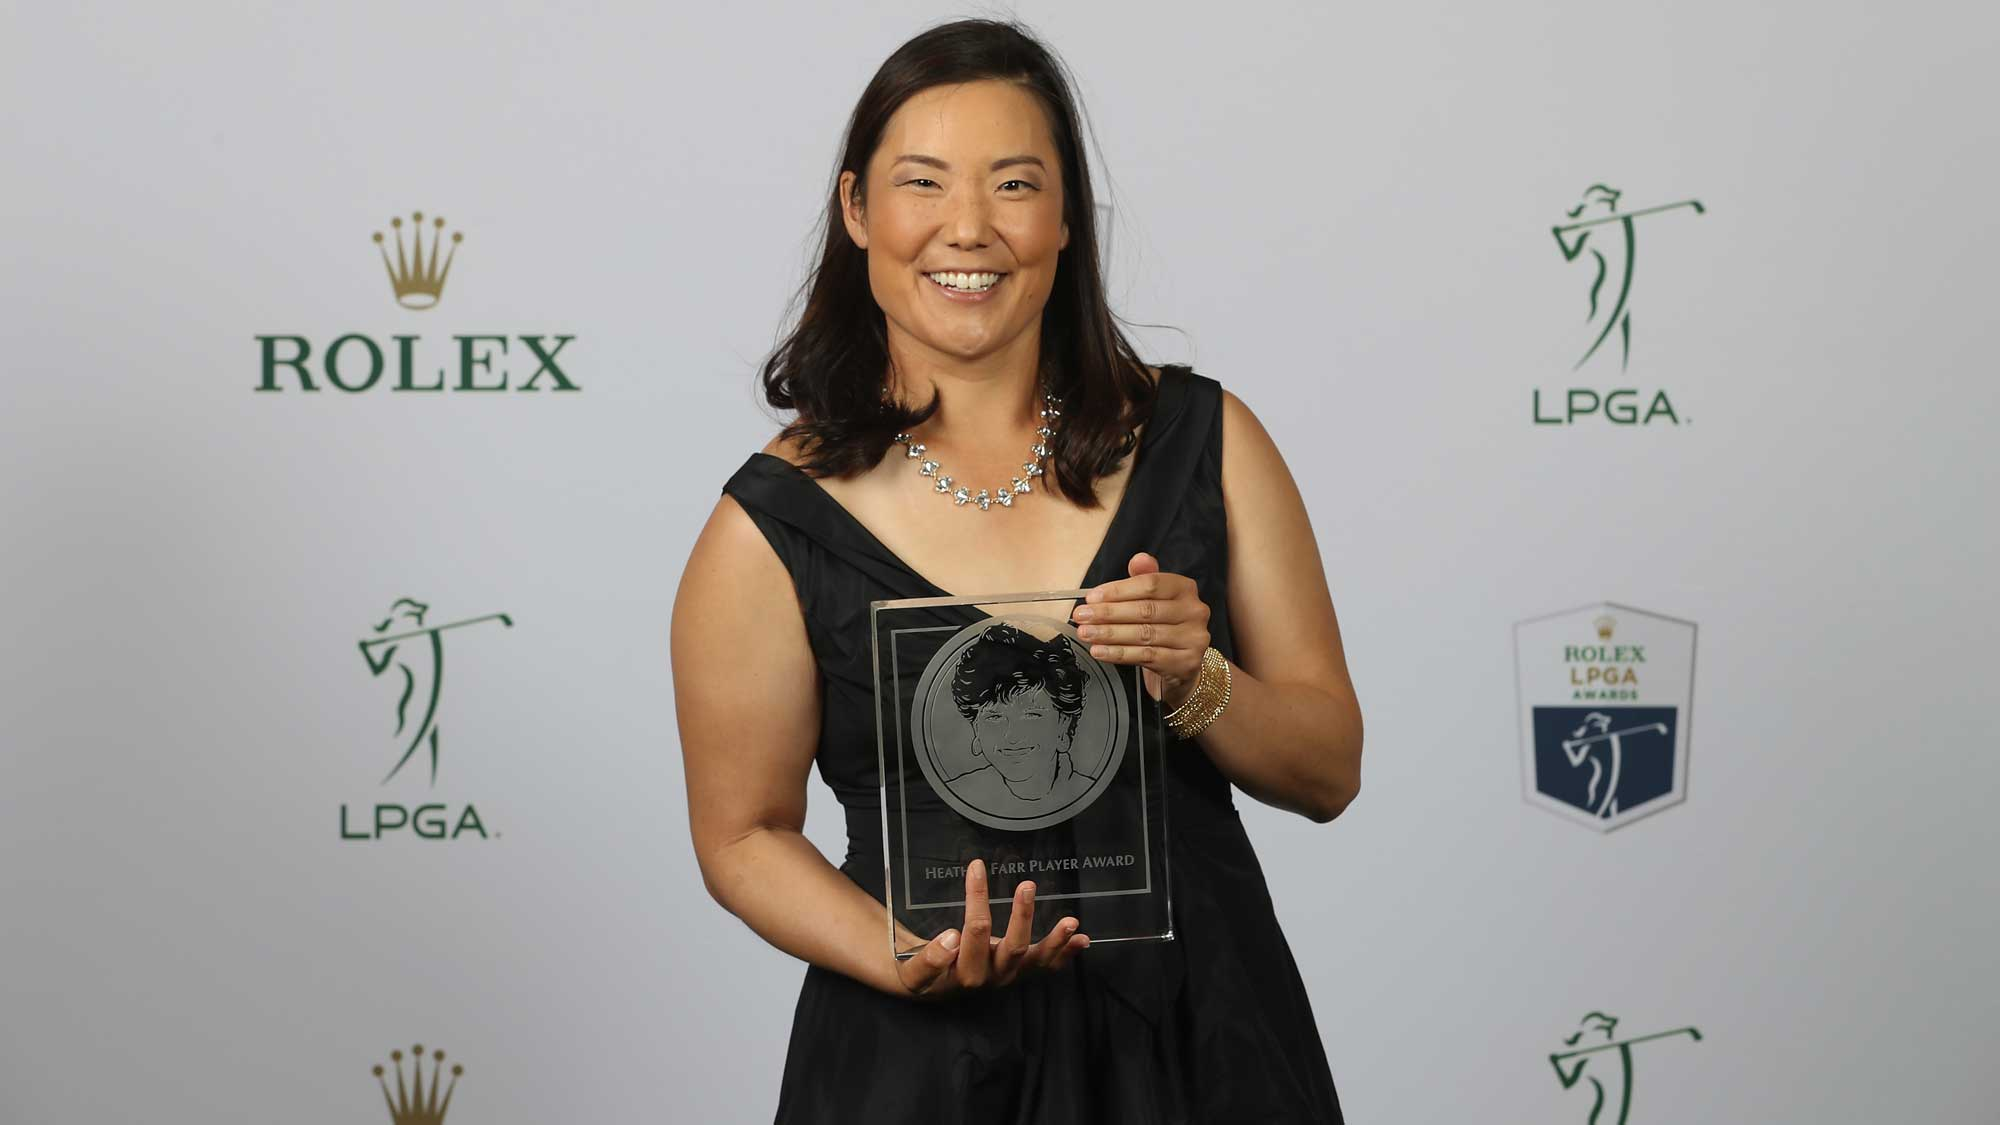 Heather Farr Perseverance Award recipient Tiffany Joh of the United States poses for a portrait during the LPGA Rolex Players Awards at The Ritz-Carlton Golf Resort